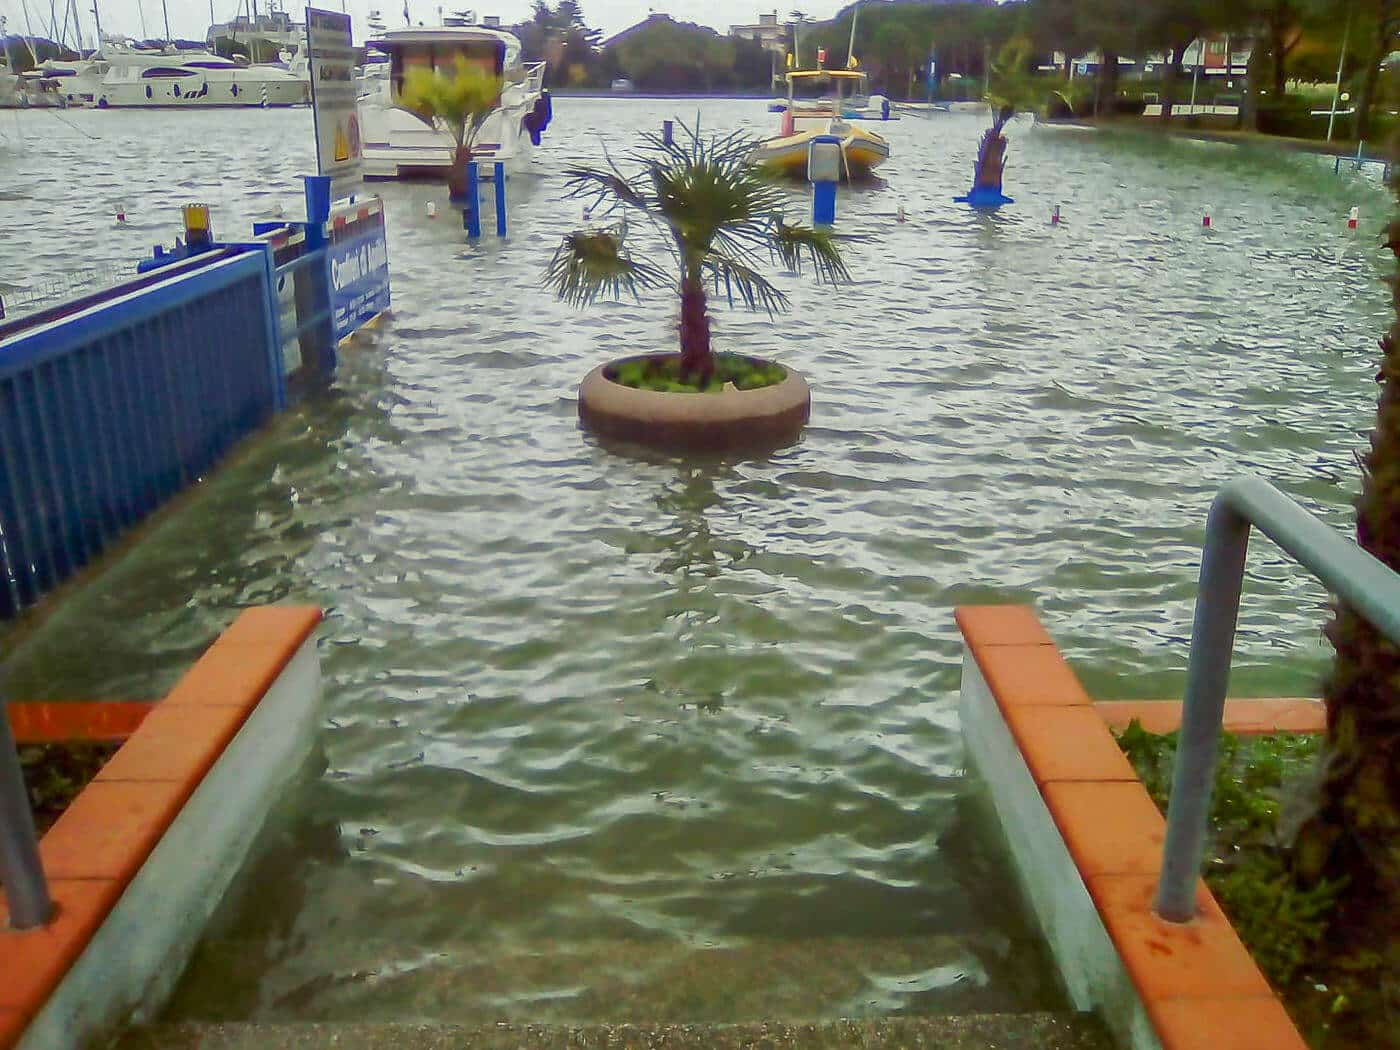 Storm of the century in Croatia and Italy: Marinas flooded – boats damaged